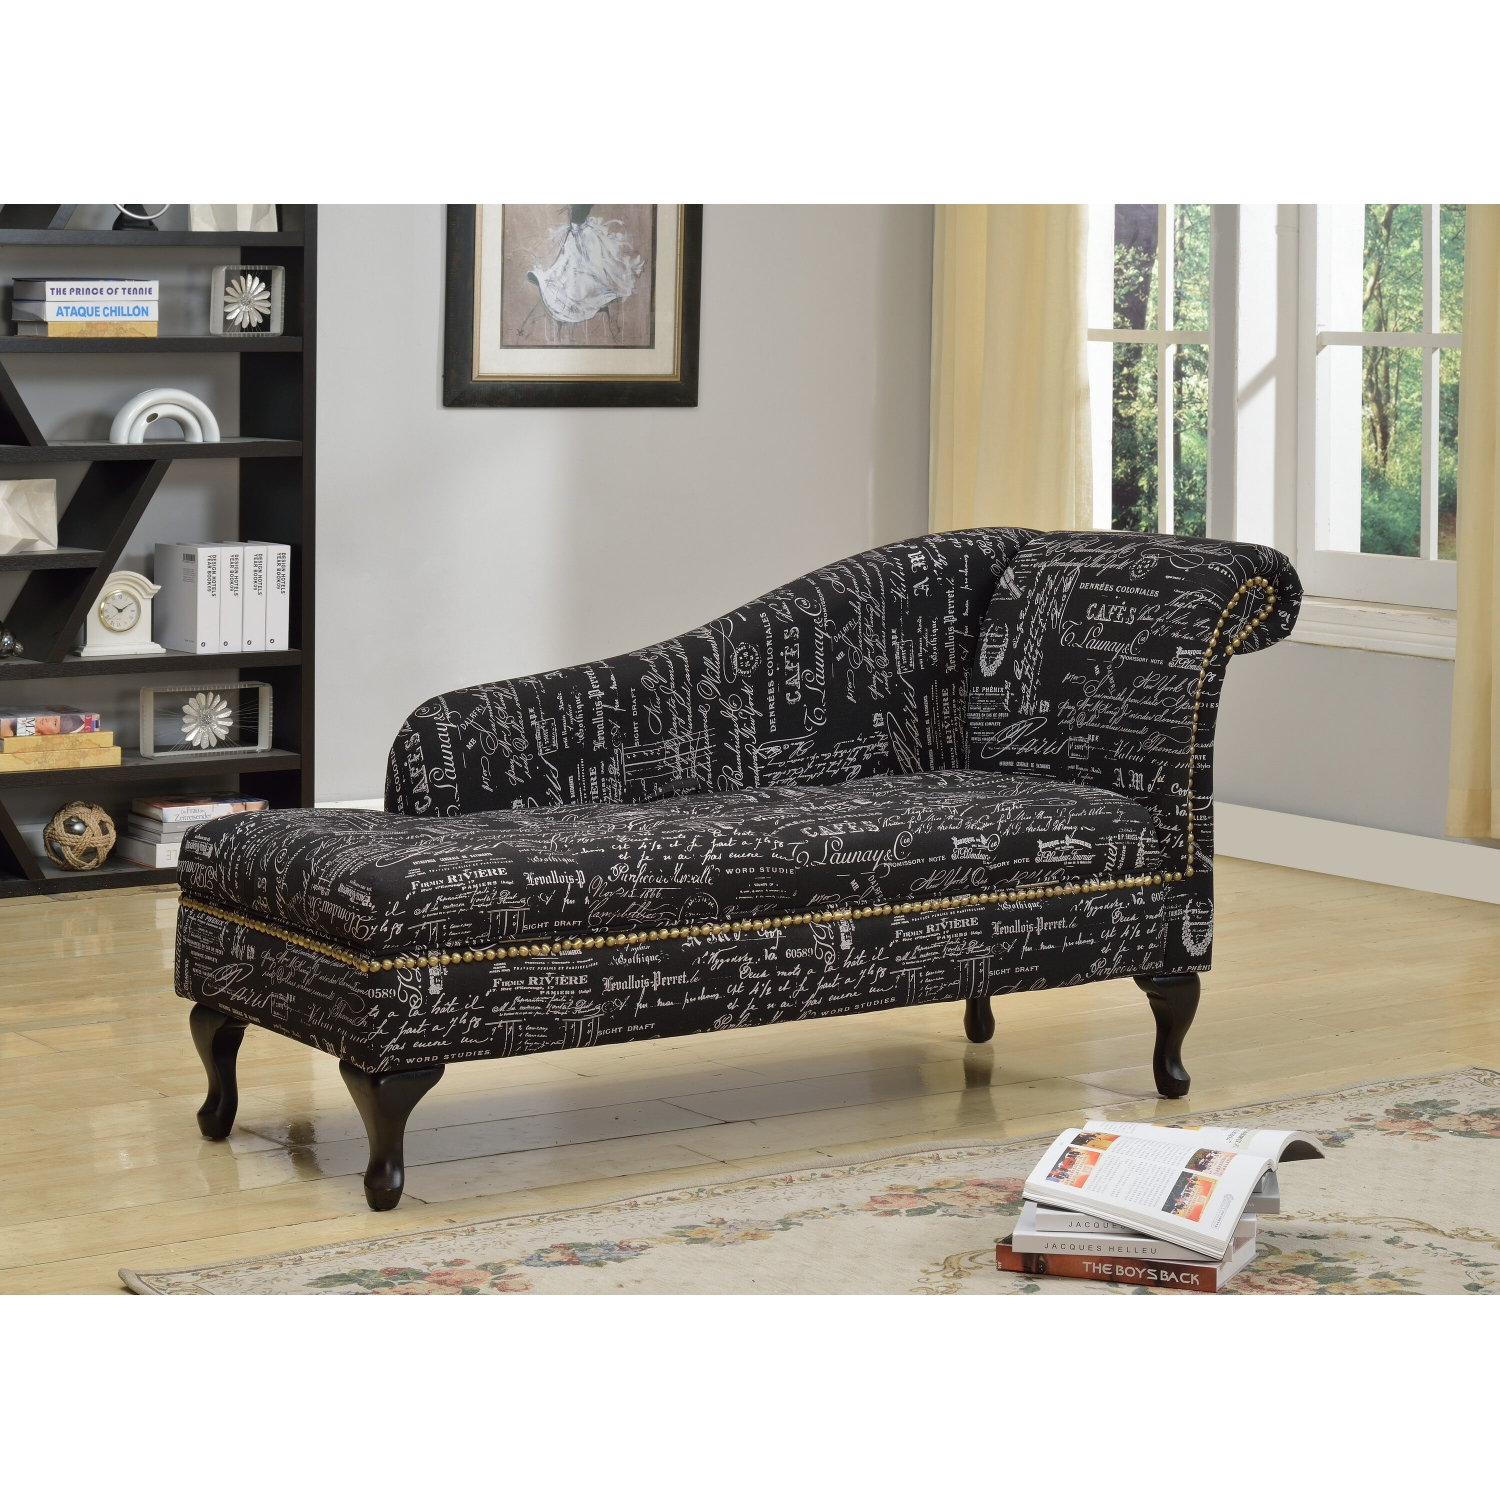 K Living Awsta Vintage Style Scripted Print Black Chaise Best Buy Canada